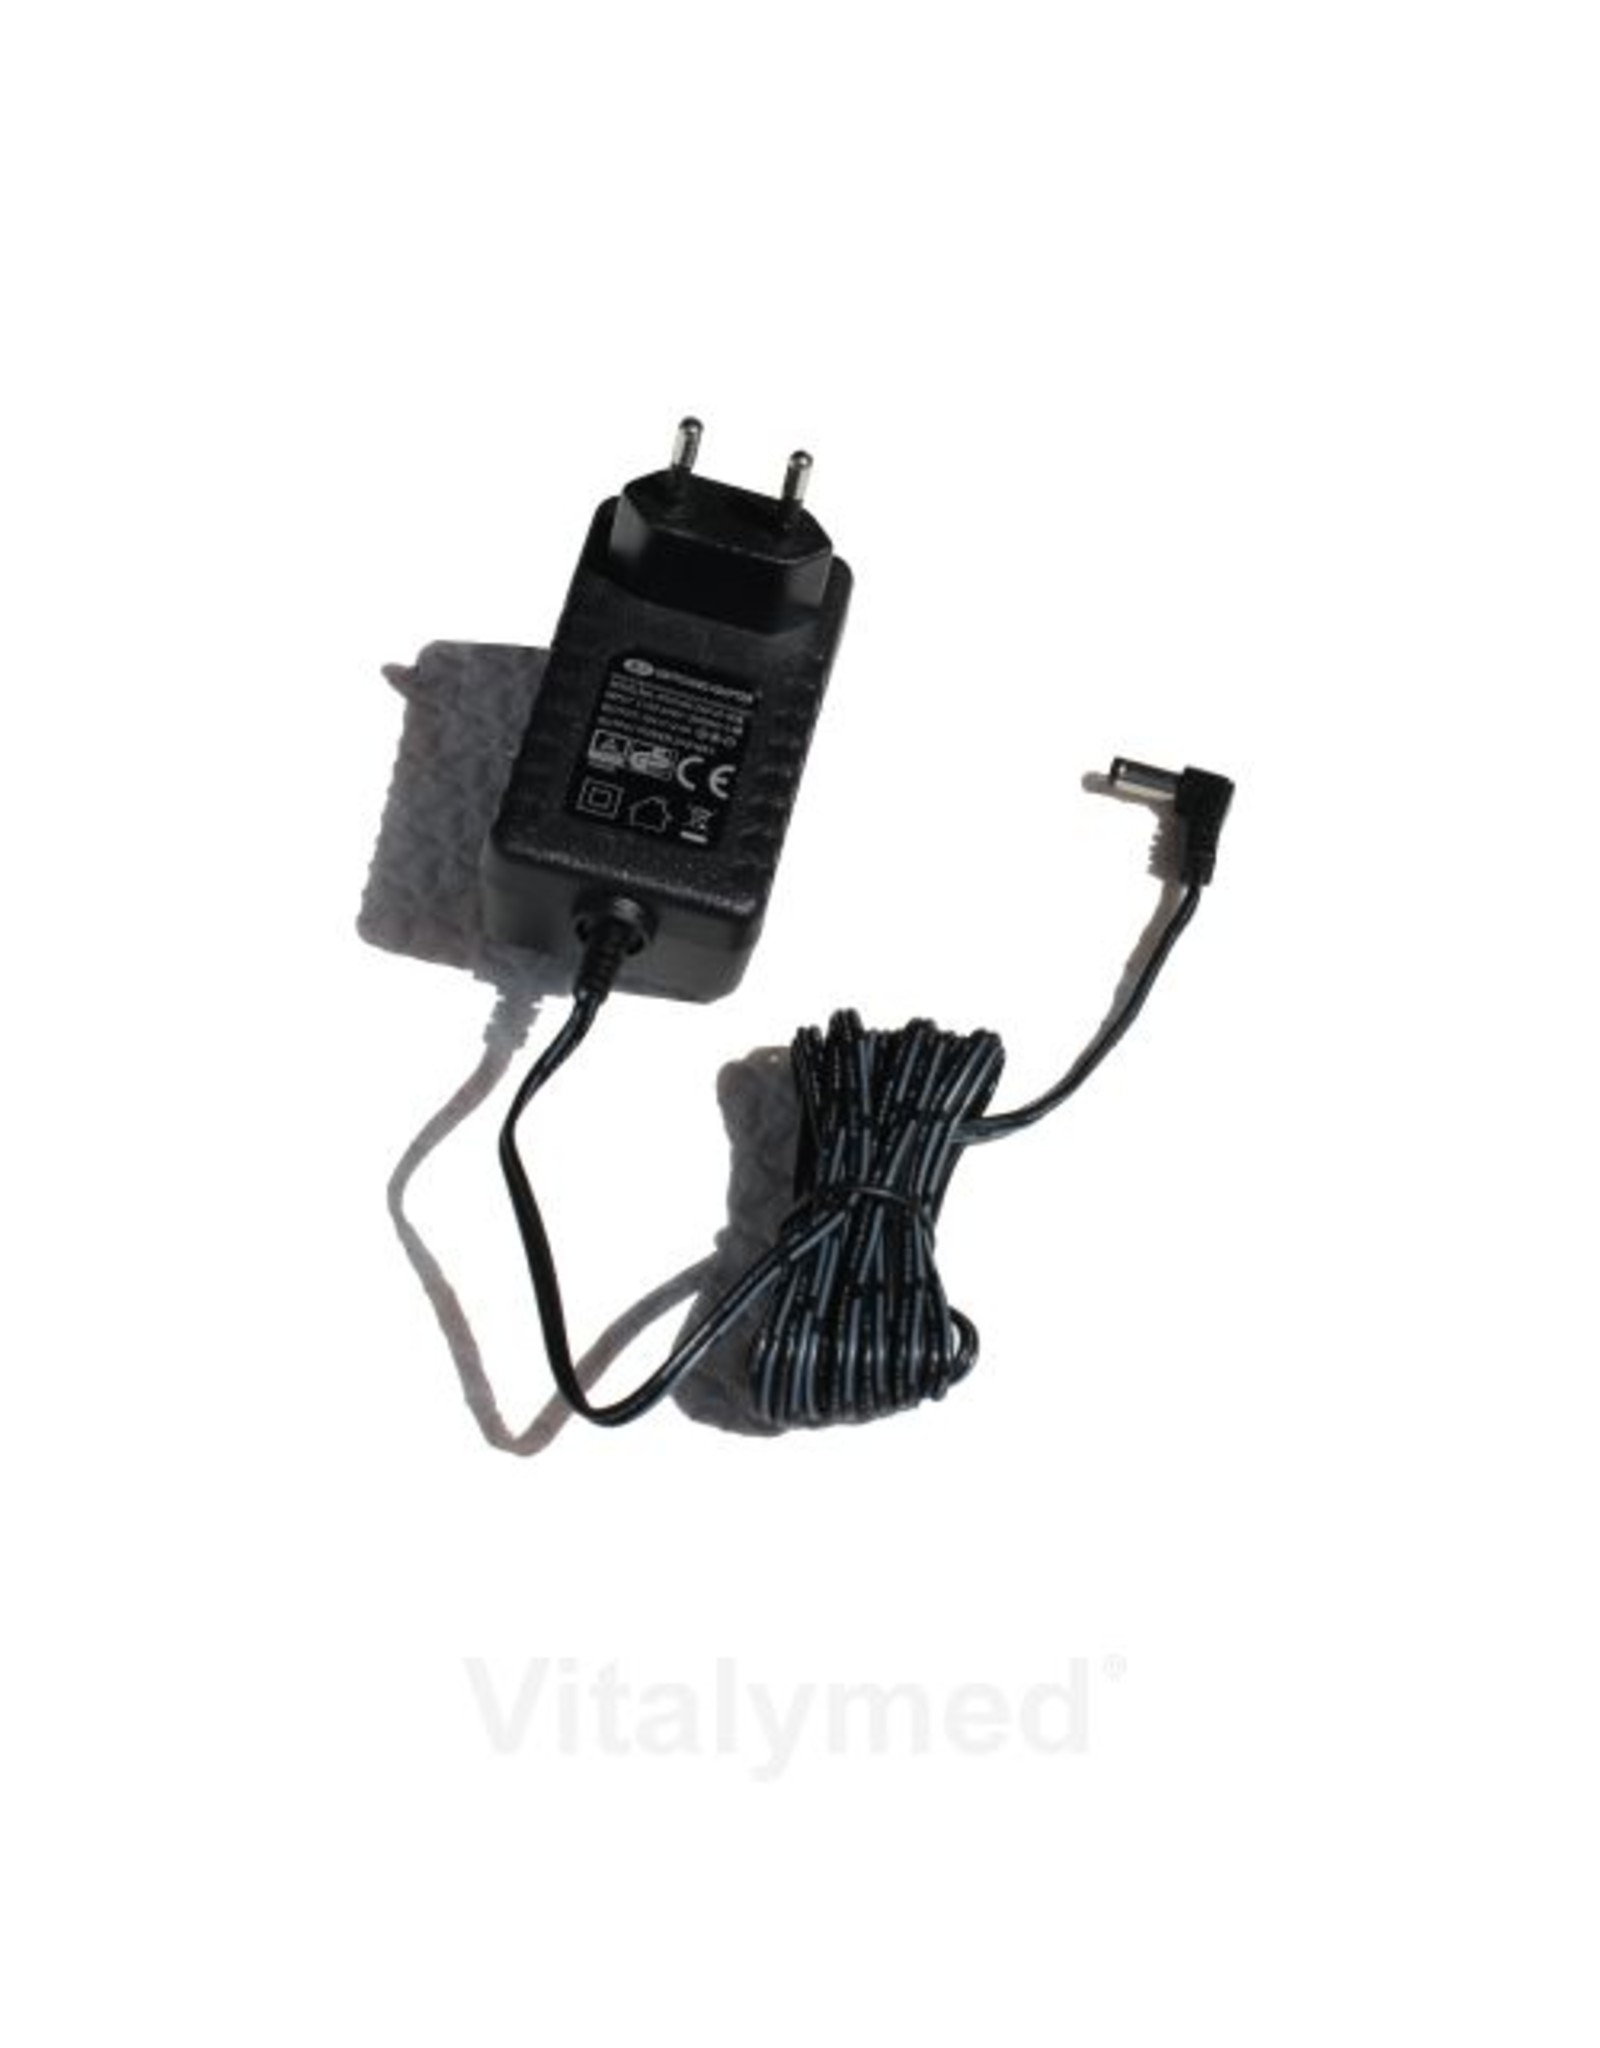 INVITALIS Original - Elektrocable for all Massagedevices